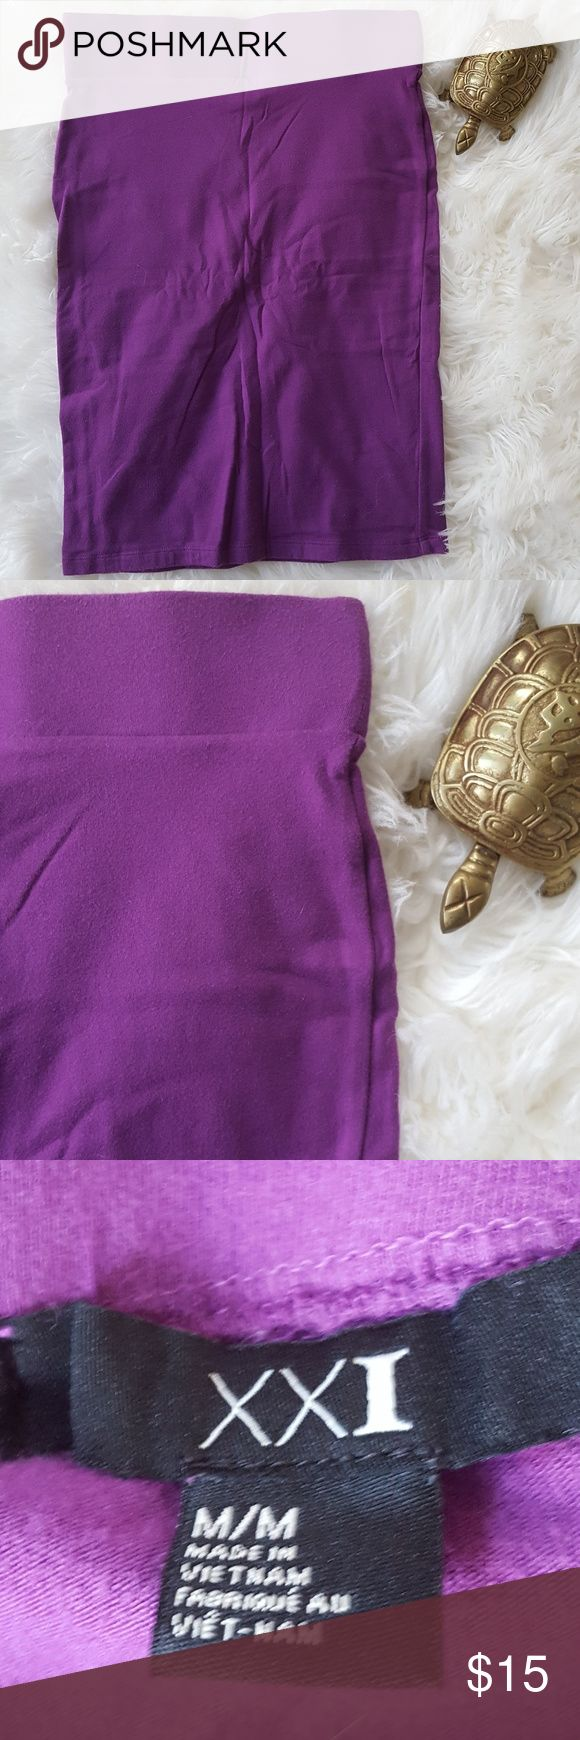 Forever 21 Purple Pencil Skirt, size M Suoer cute purple pencil skirt by Forever 21. This skirt compliments your silhouette. A very comfortable skirt. Forever 21 Skirts Mini